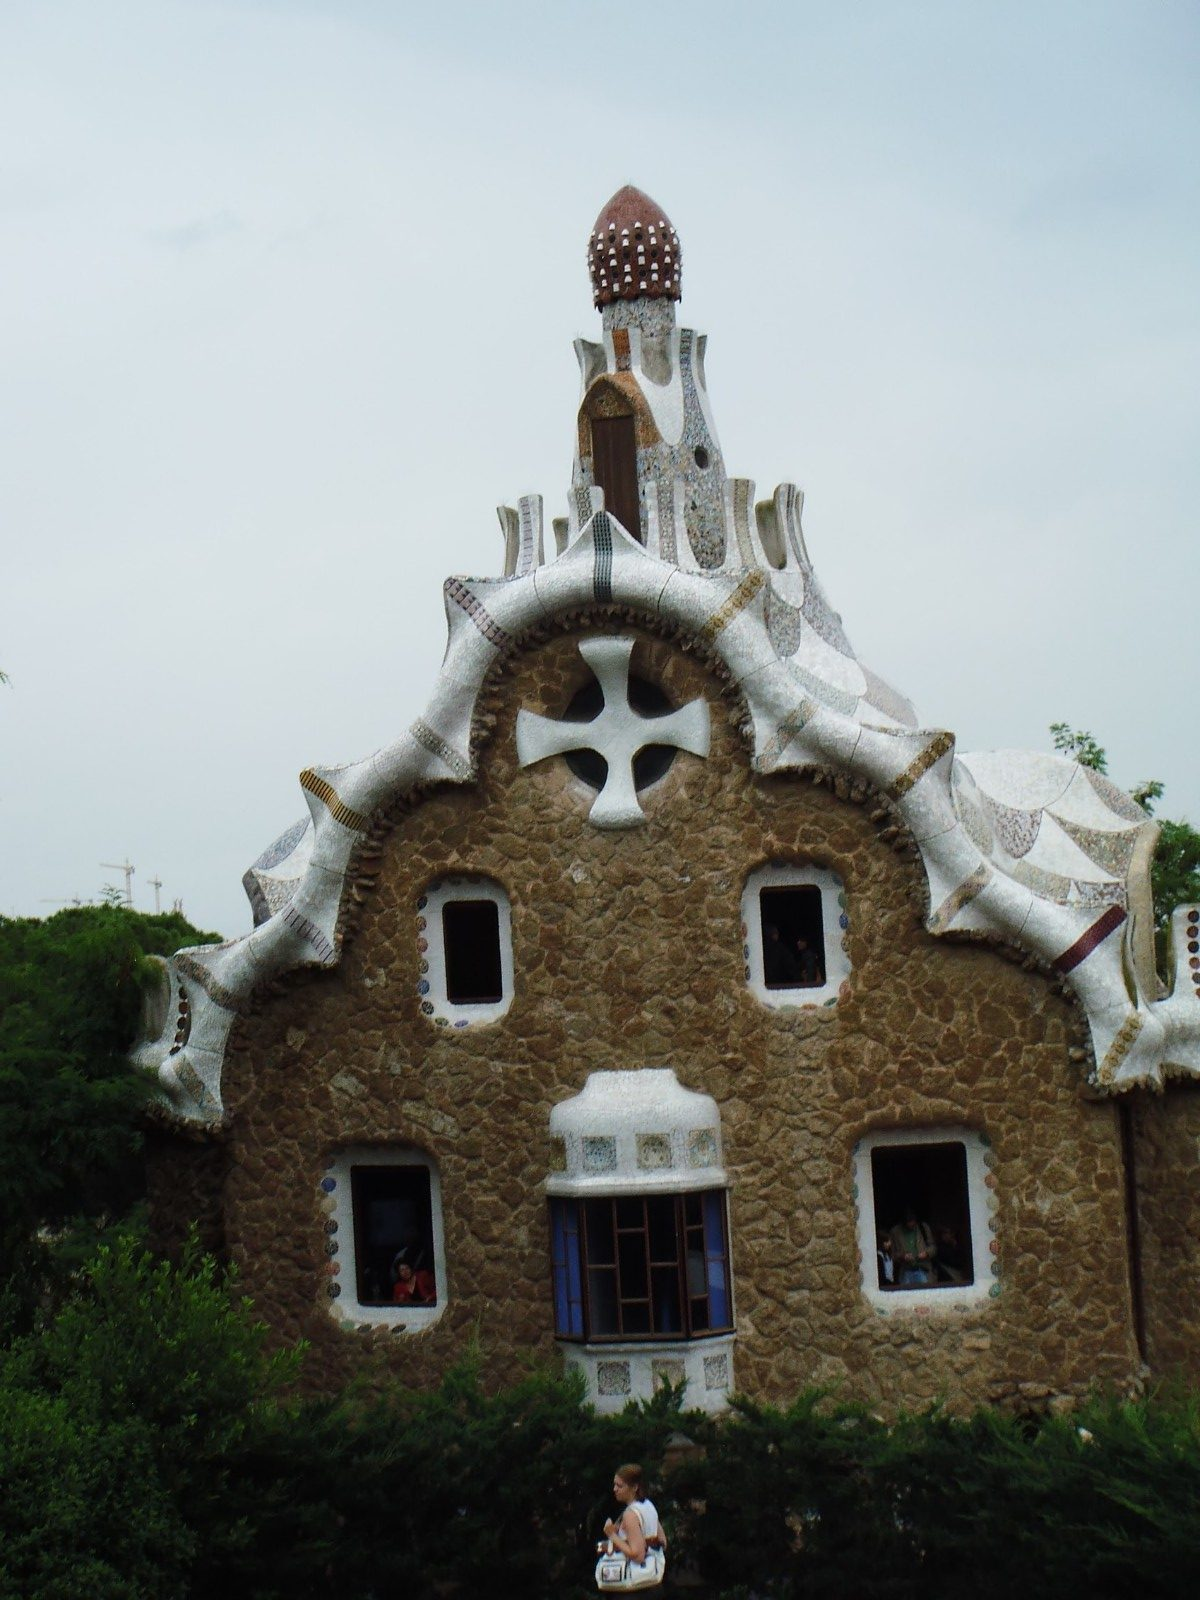 Gaudi's Gingerbread House in Parc Guell Looks Delicious 5